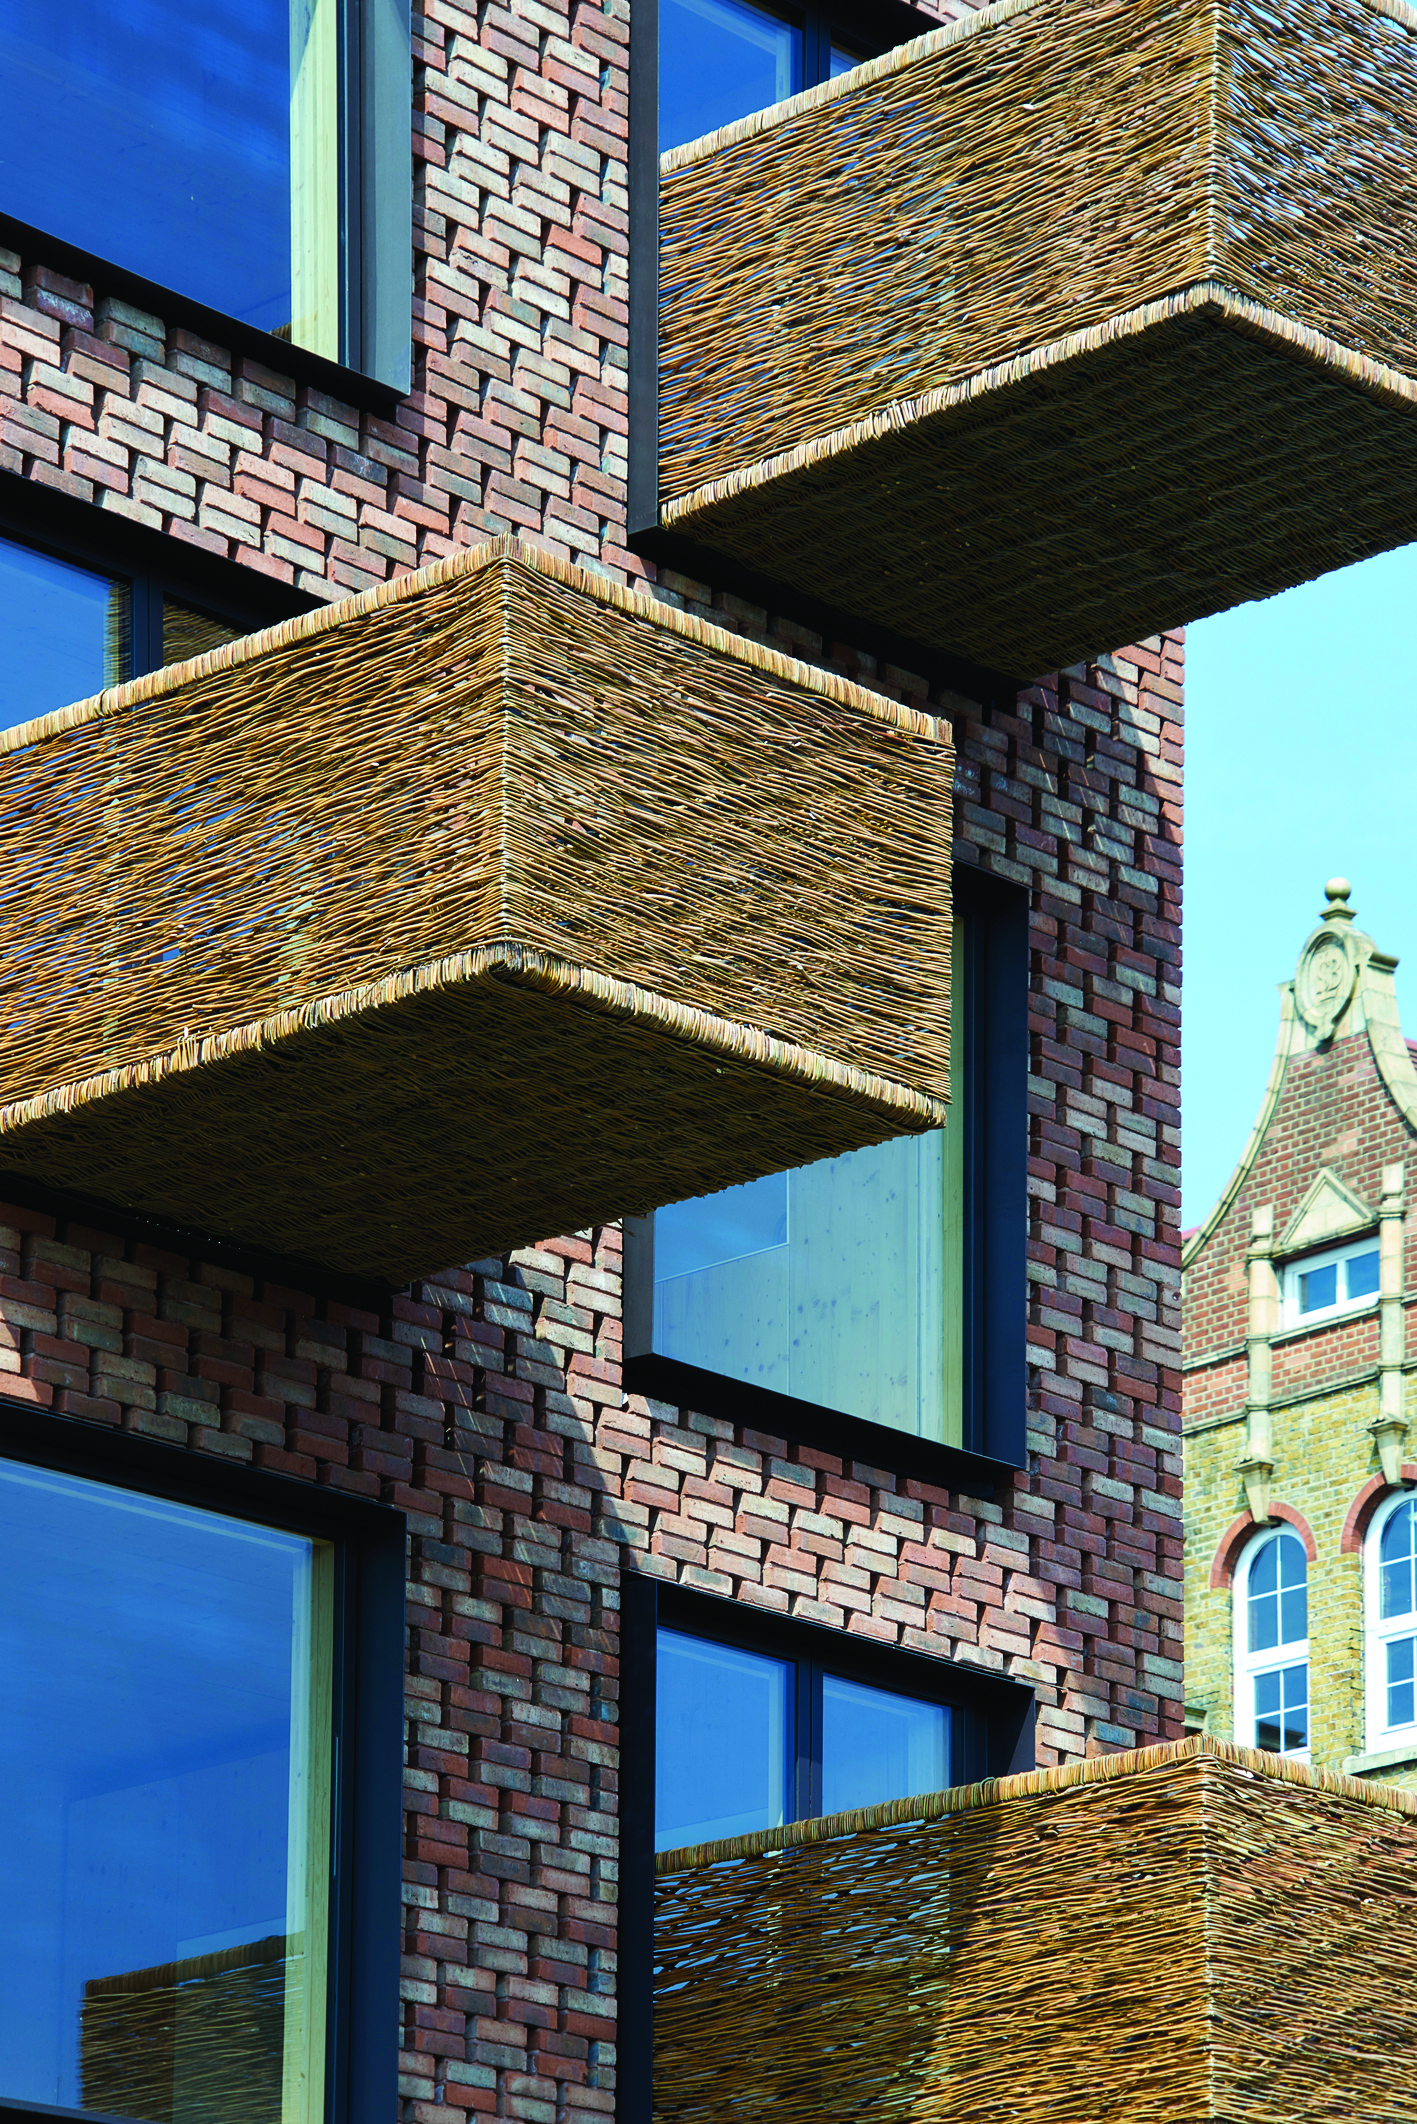 Wicker-covered balconies alternating in positions on the outside of Barretts Grove flatted development.